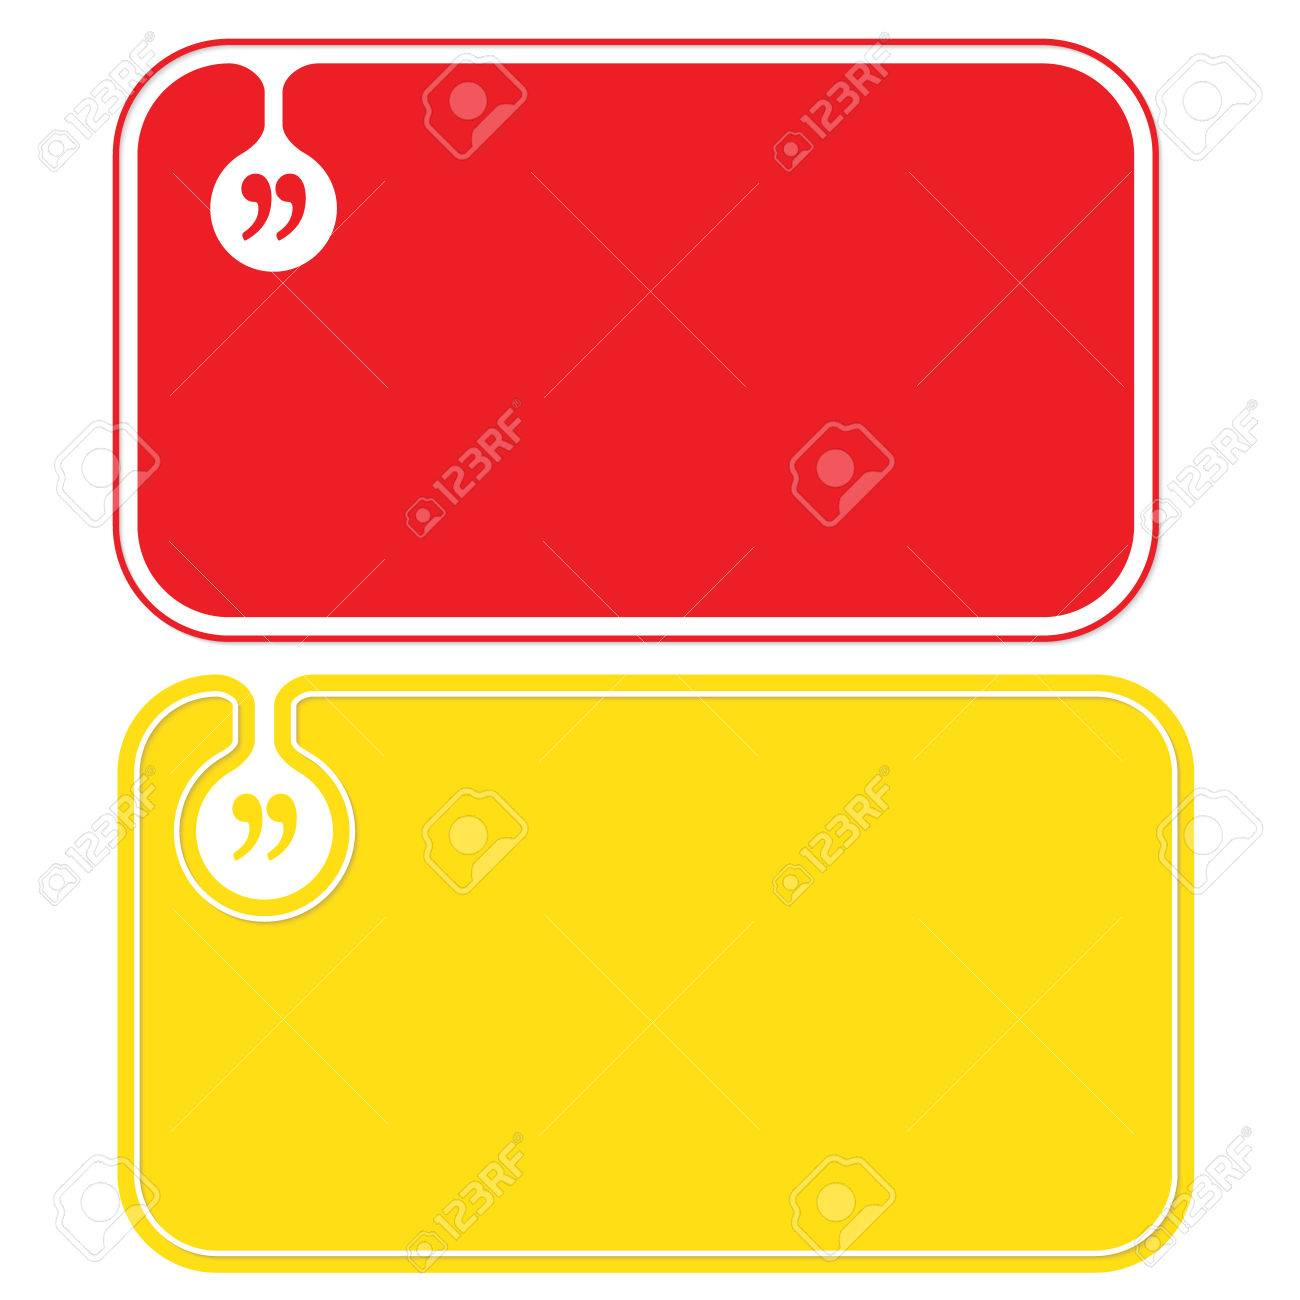 Colored Business Cards And Square Brackets Royalty Free Cliparts ...